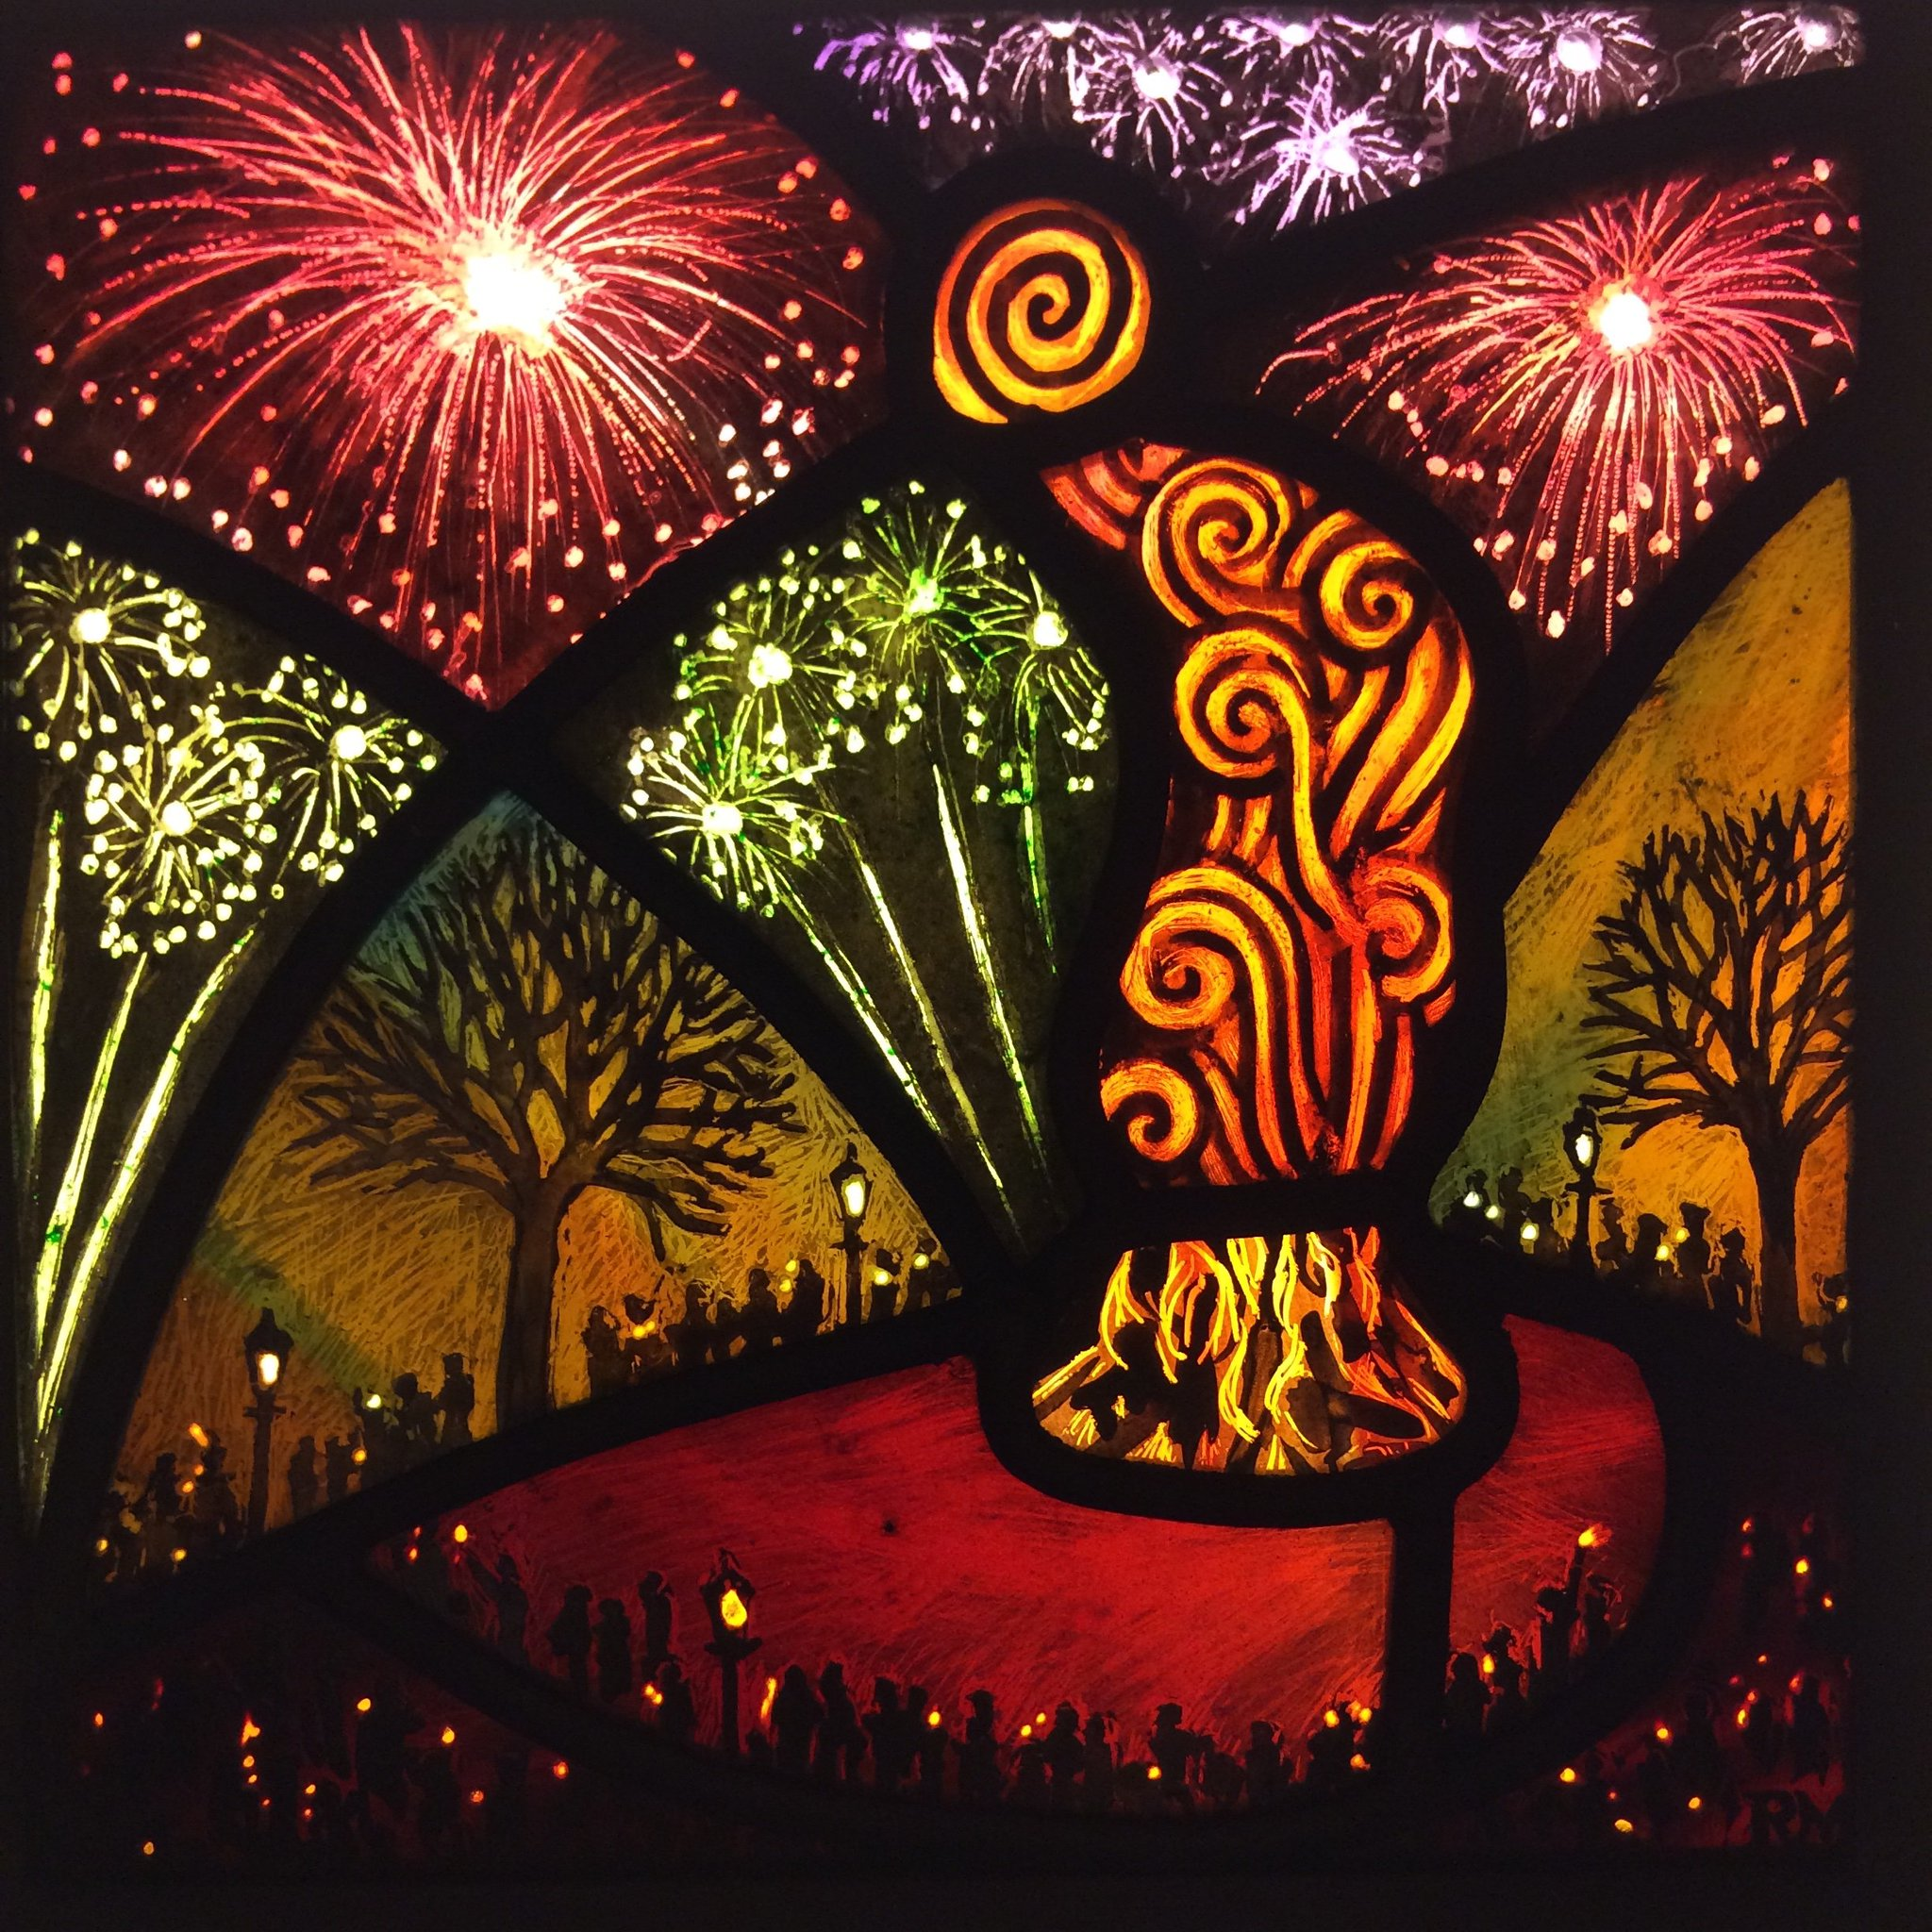 Rachel Mulligan @RMStainedGlass Another chance to see this small panel inspired by Bonfire Nights on Primrose Hill back in the day. #BonfireNight @BSMGP @InPrimroseHill @_Primrose_Hill #bonfirenight2019 https://t.co/TY02N7xJhY